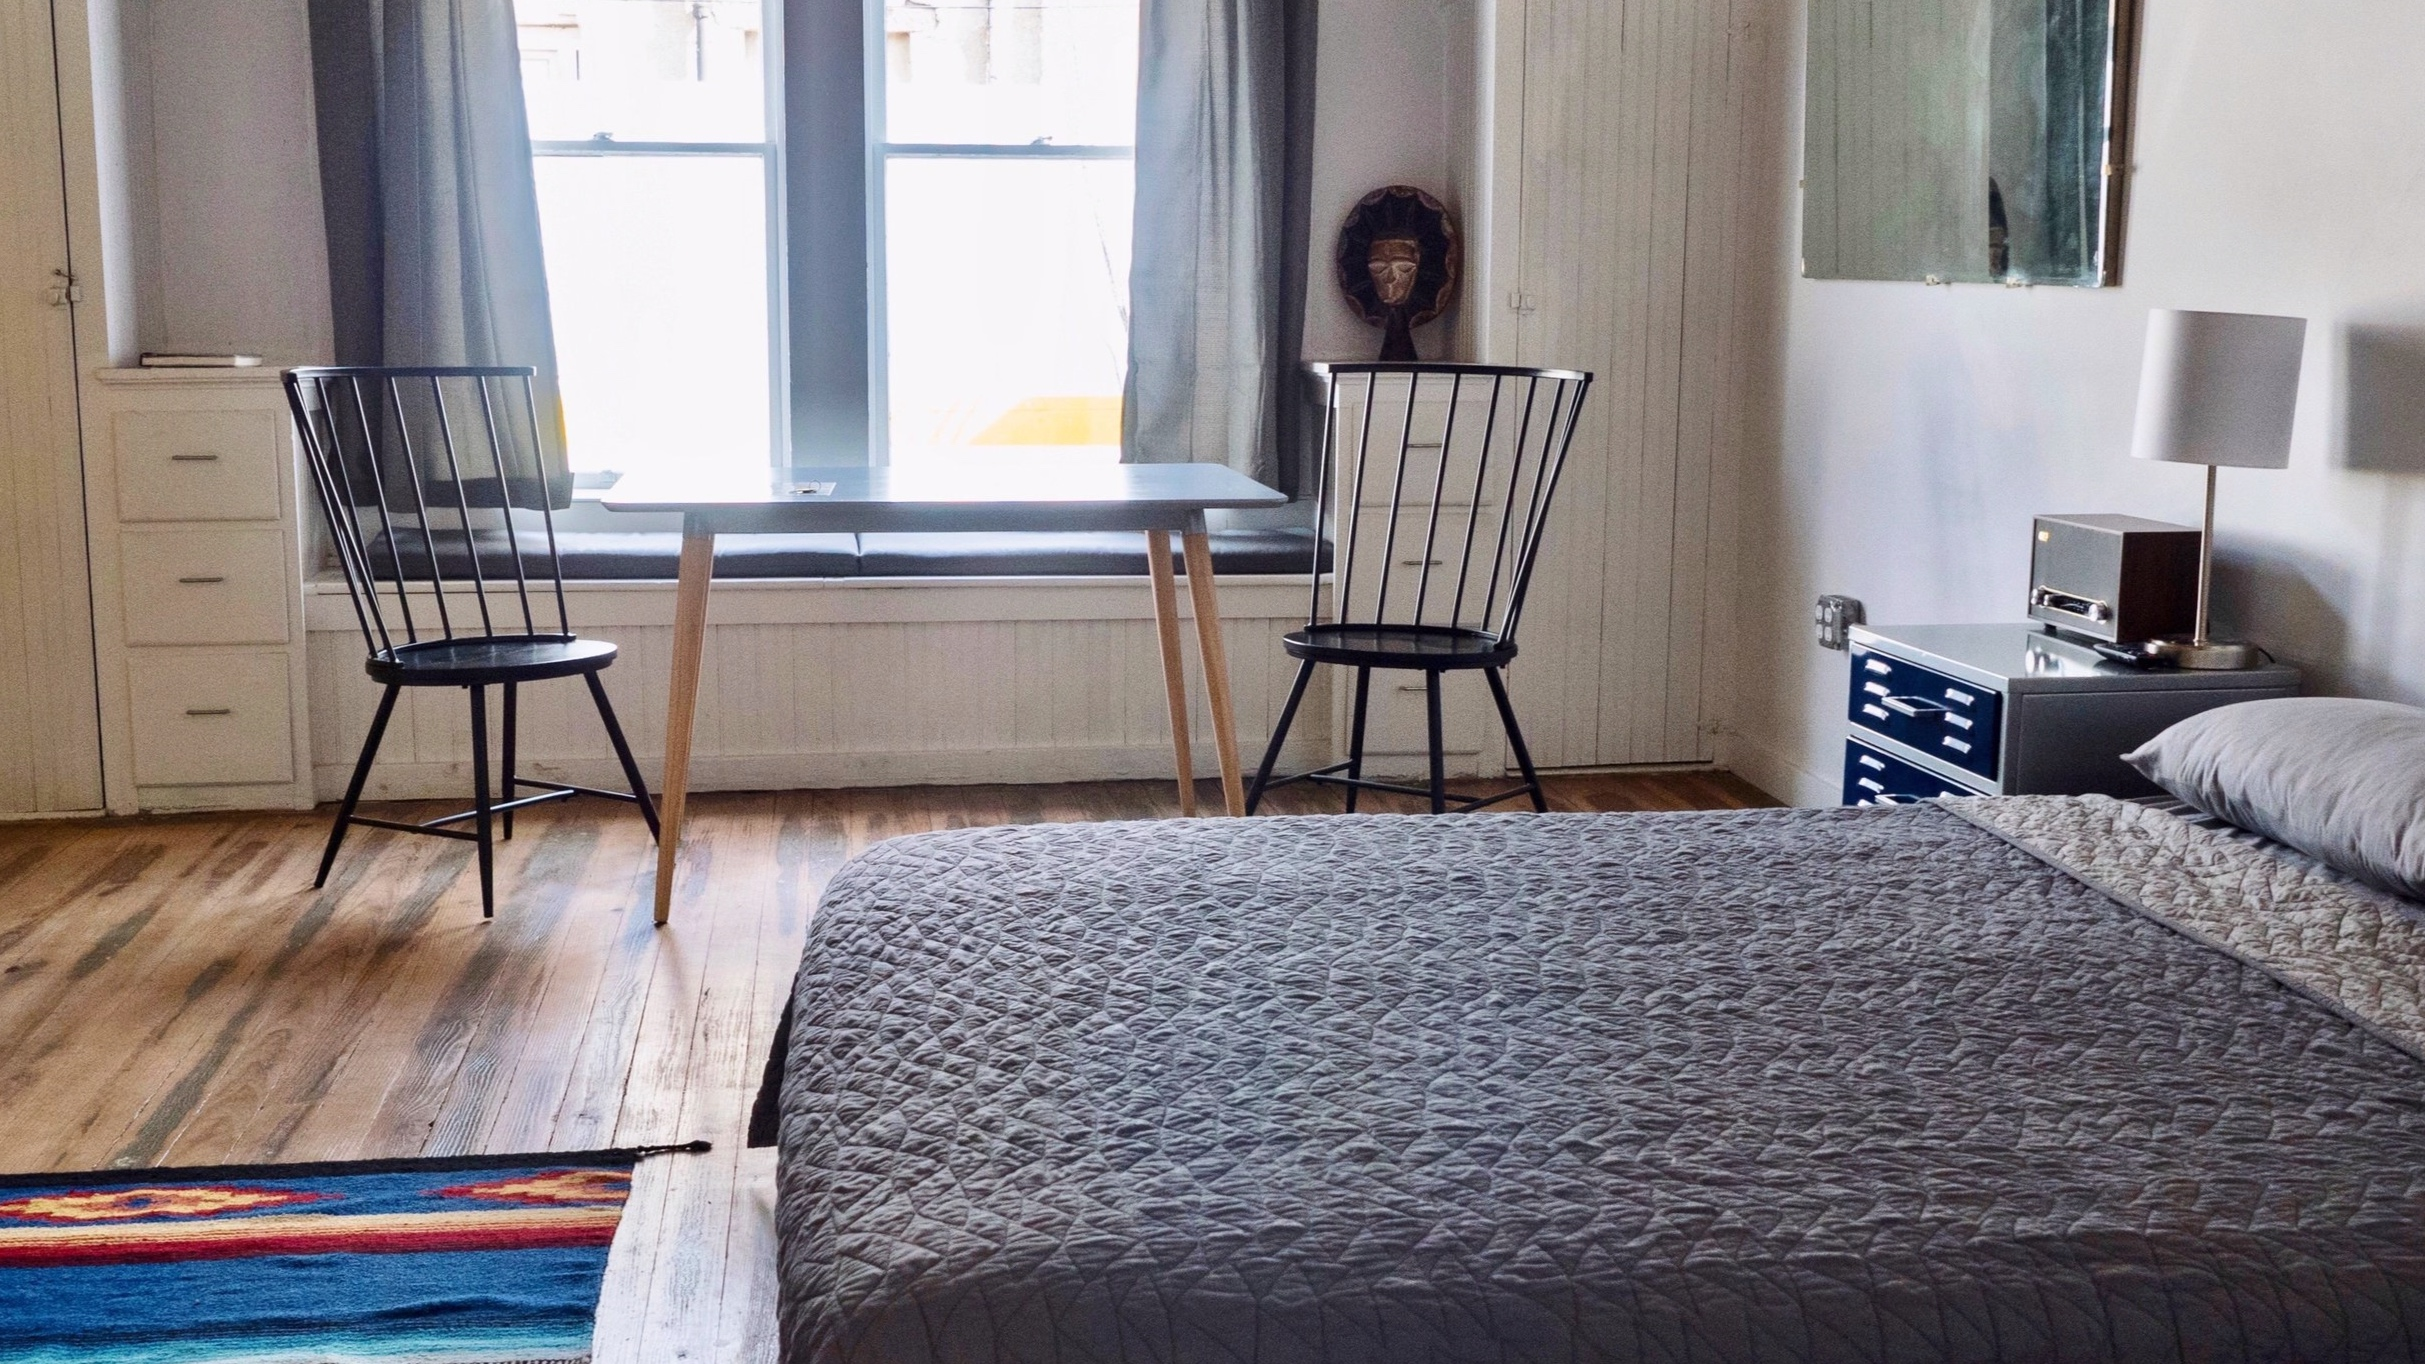 NUMBER 6 has original hardwood floors and original shiplap ceiling. Contemplate an eclectic variety of art throughout. Accommodates 2 guests. -